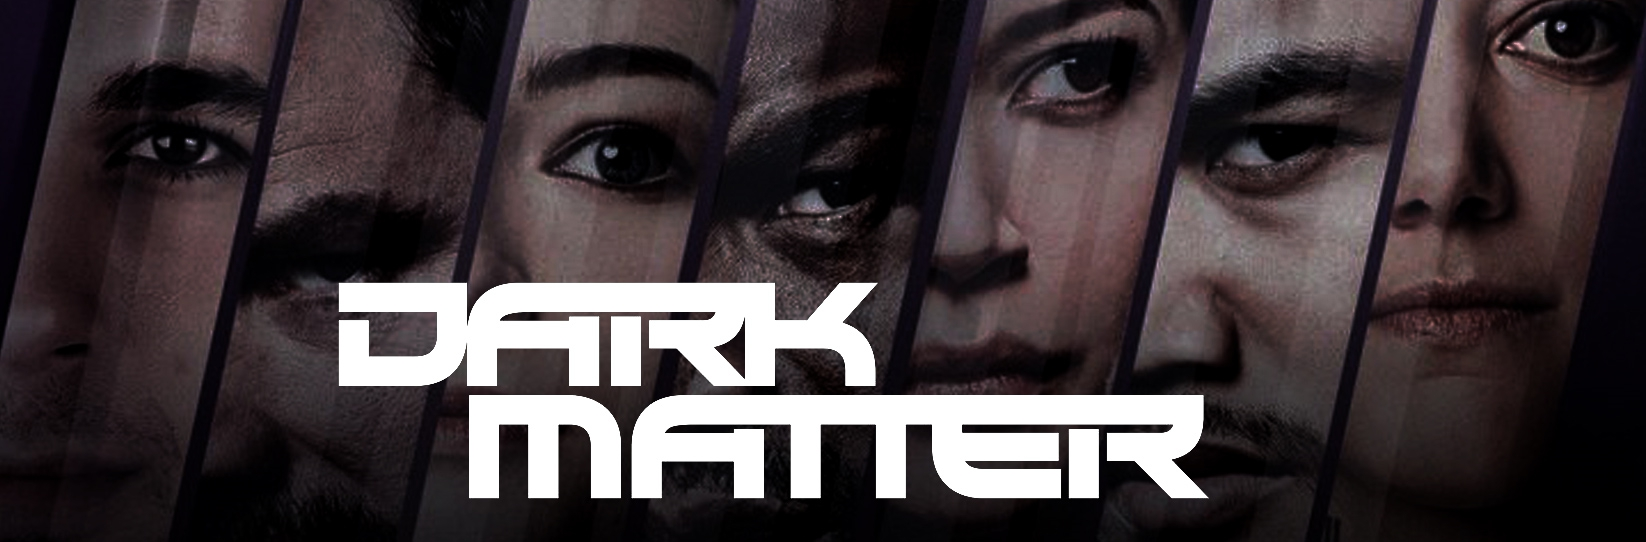 DarkMatterBanner